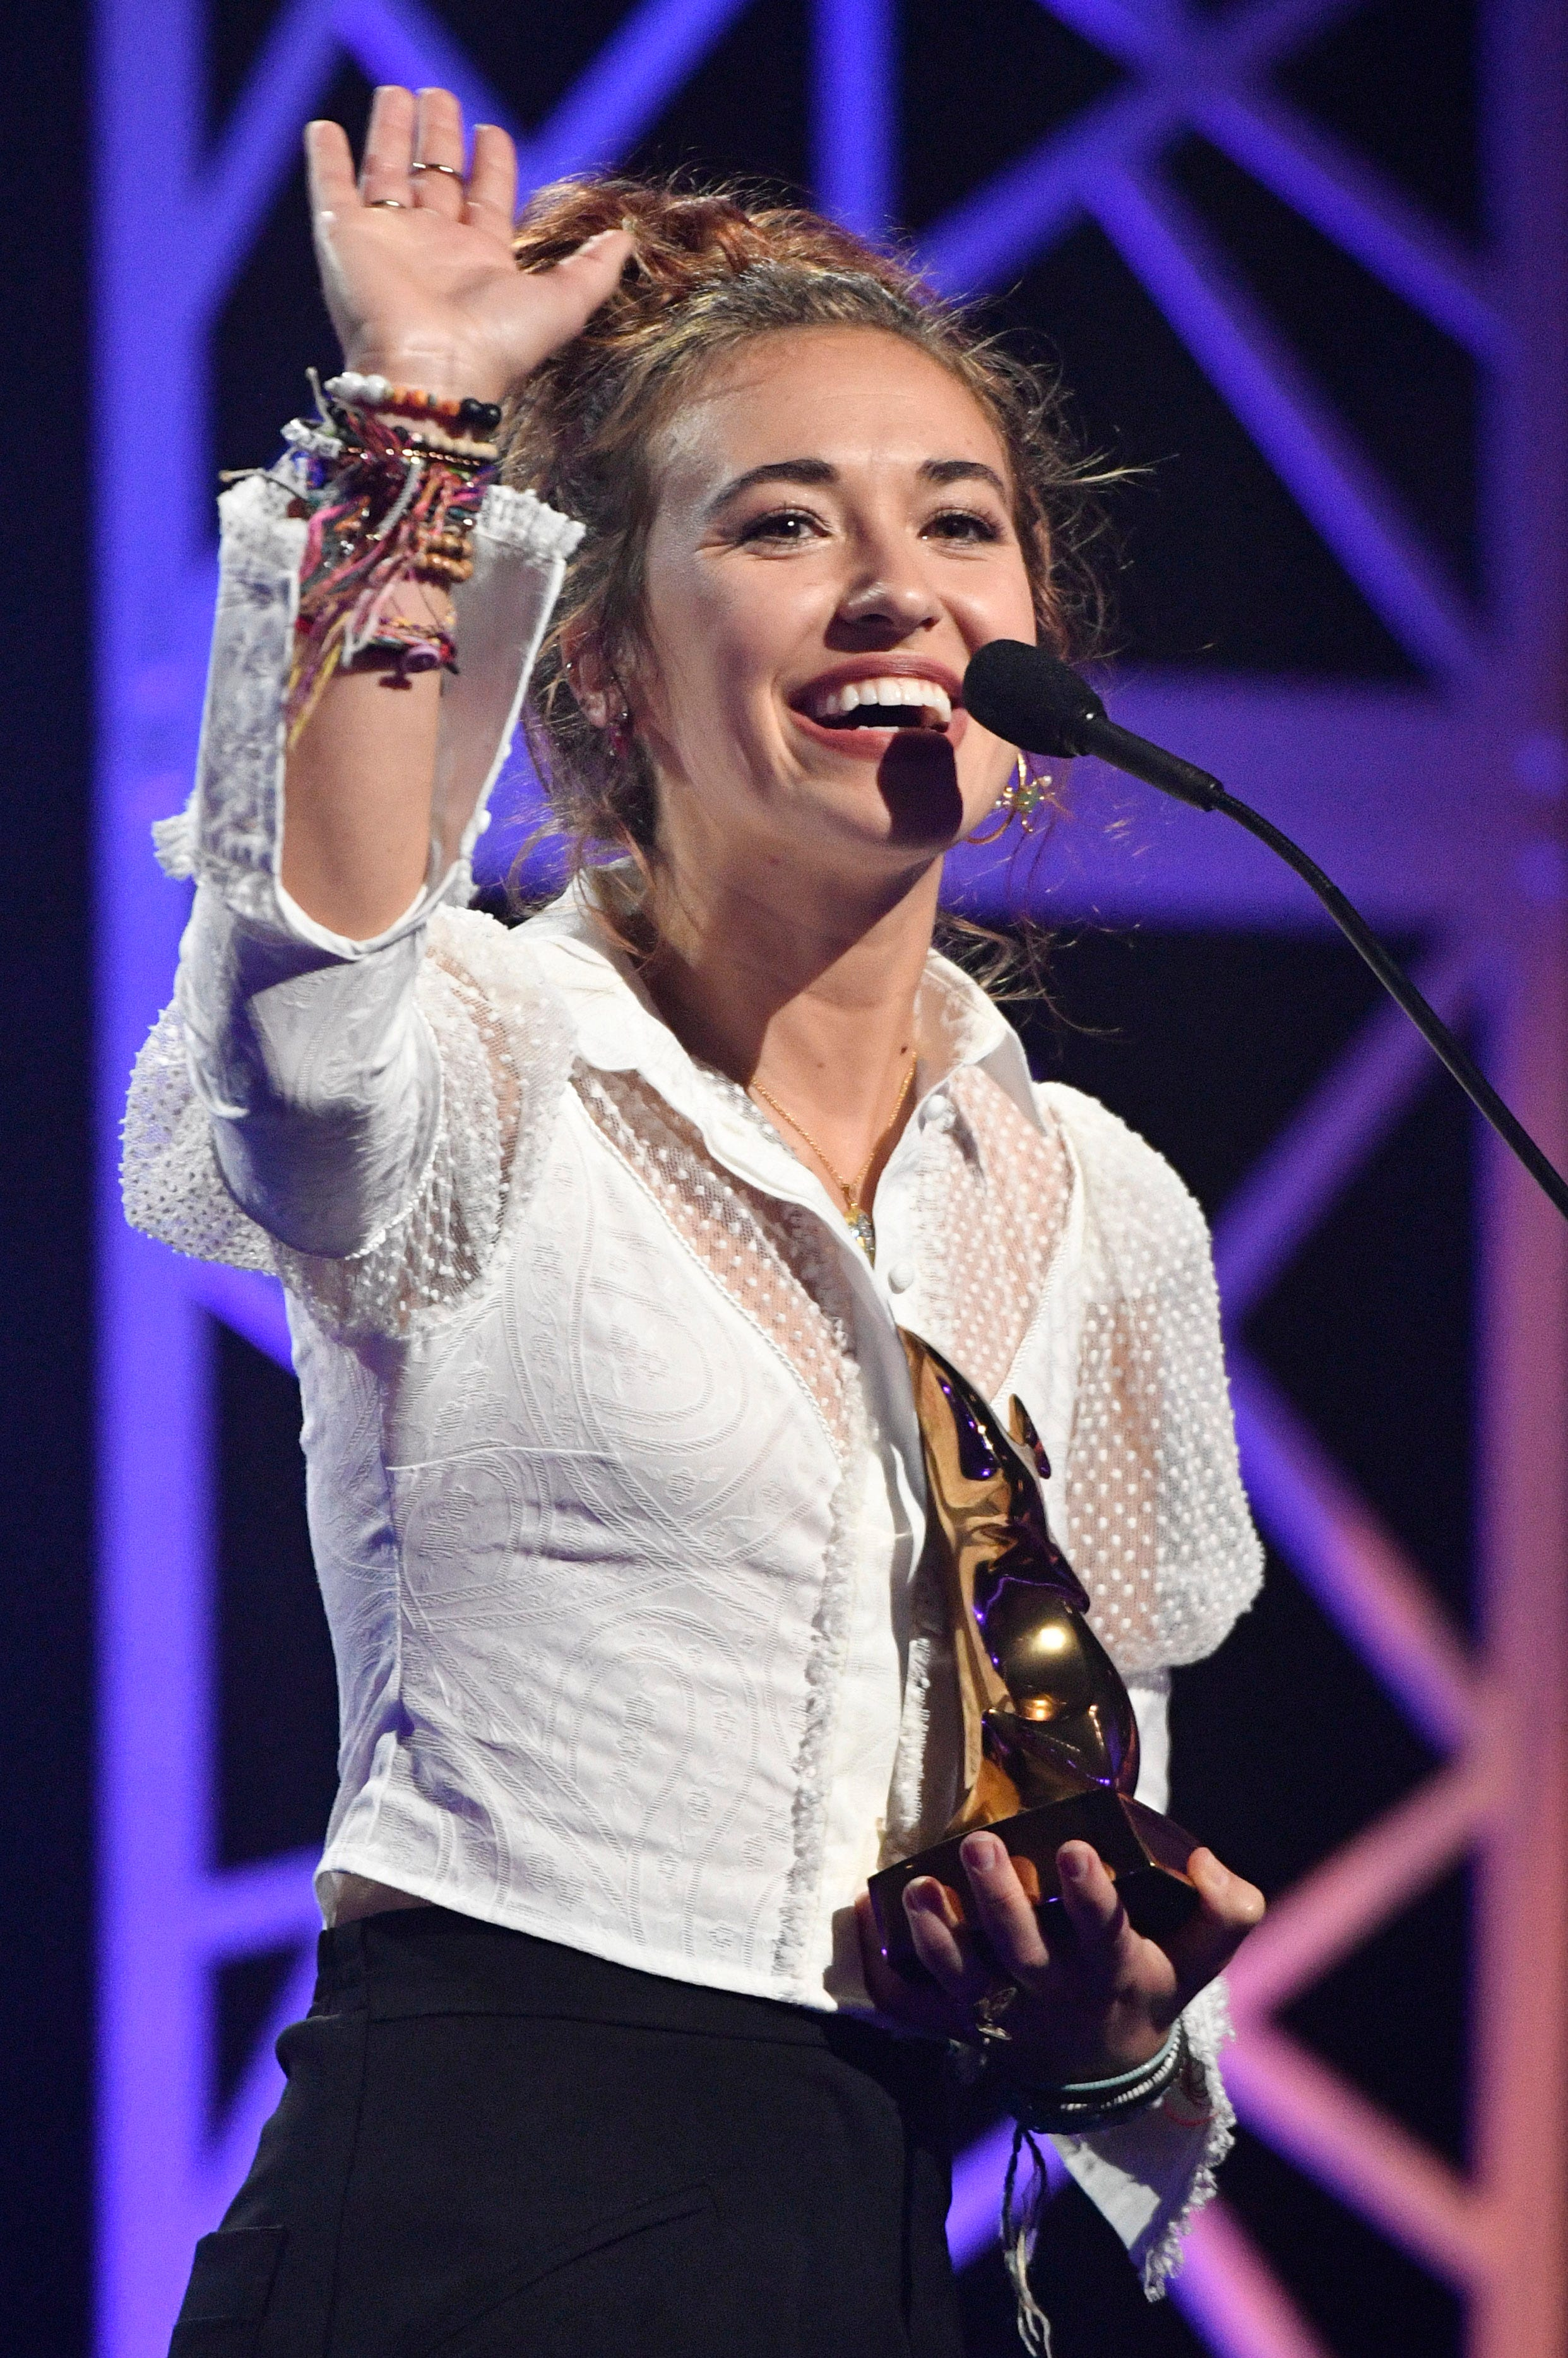 Dove Awards: Lauren Daigle earns top honors at 50th annual Christian music show